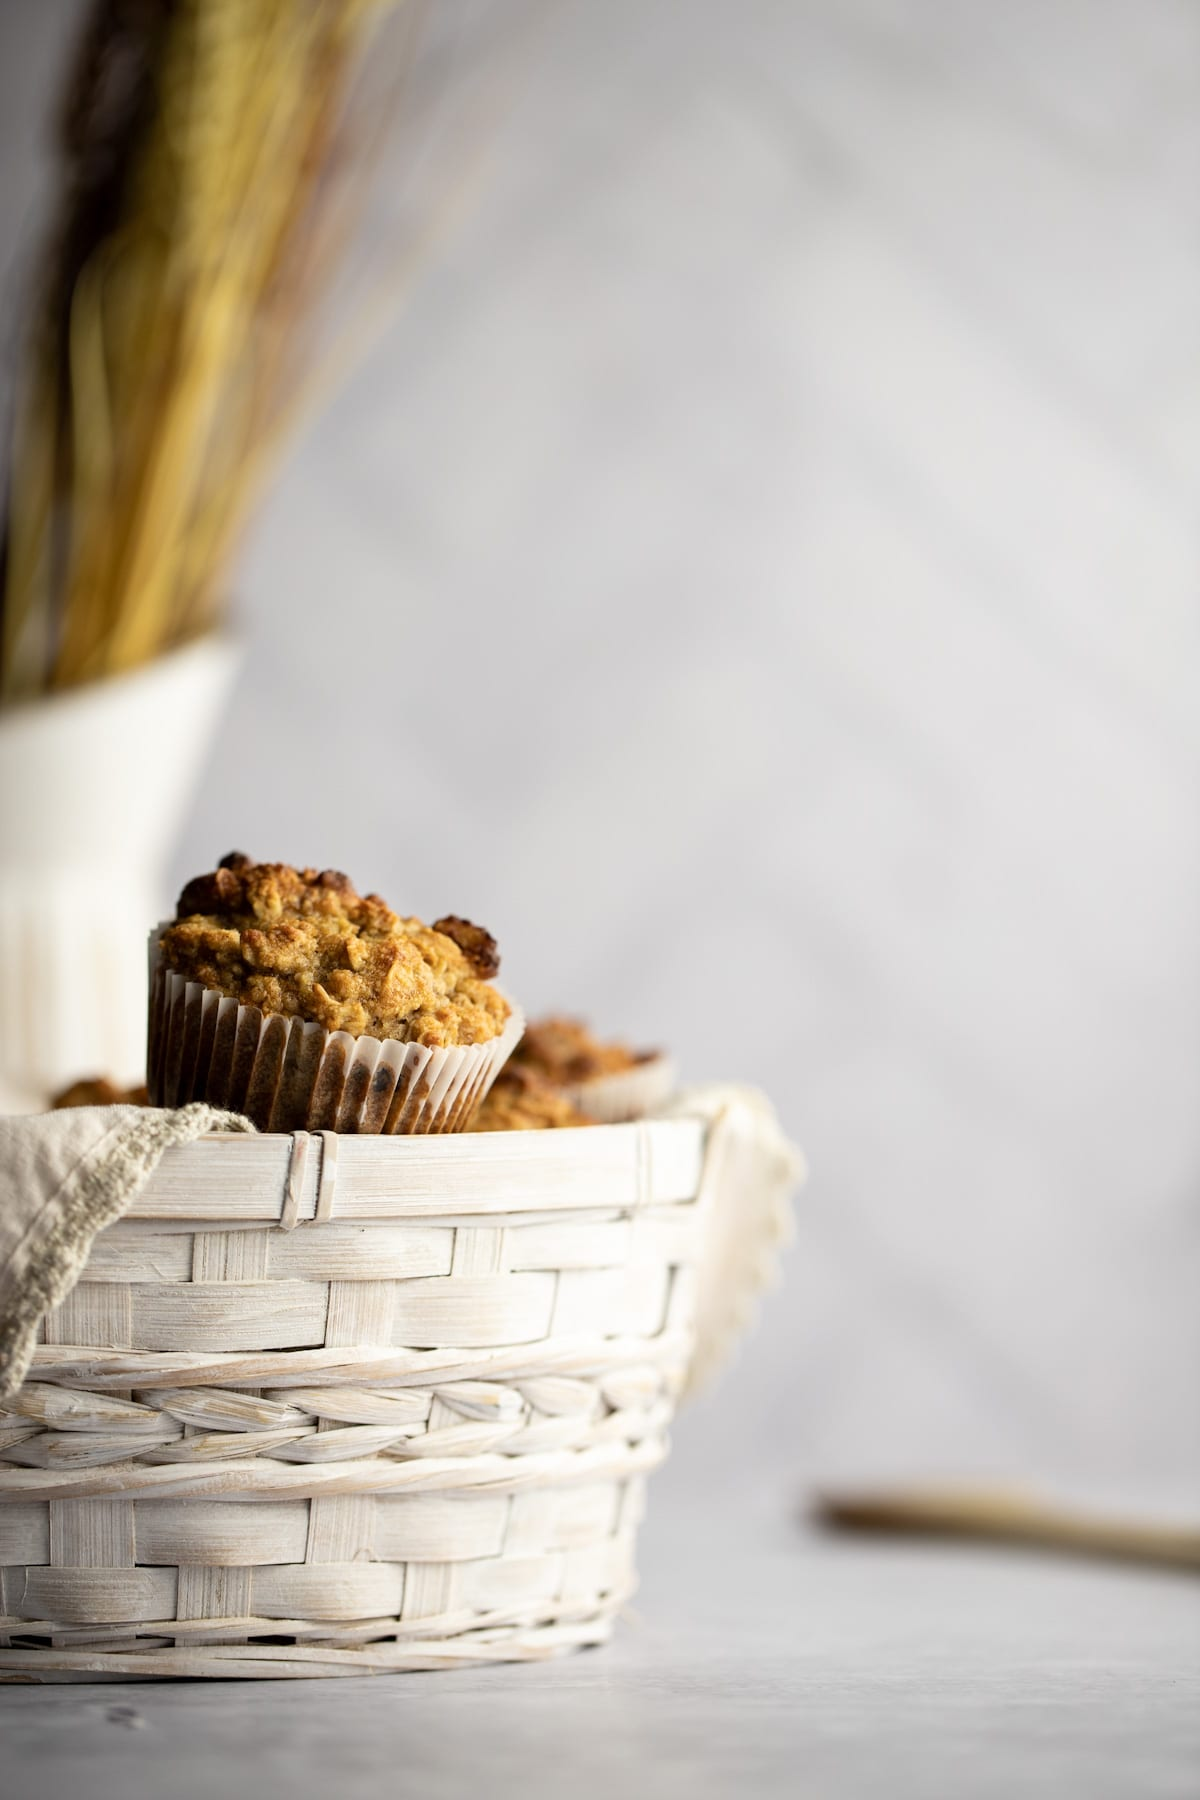 Banana almond flour muffins overflowing from a basket, with a white jug with wheat in it in the background.